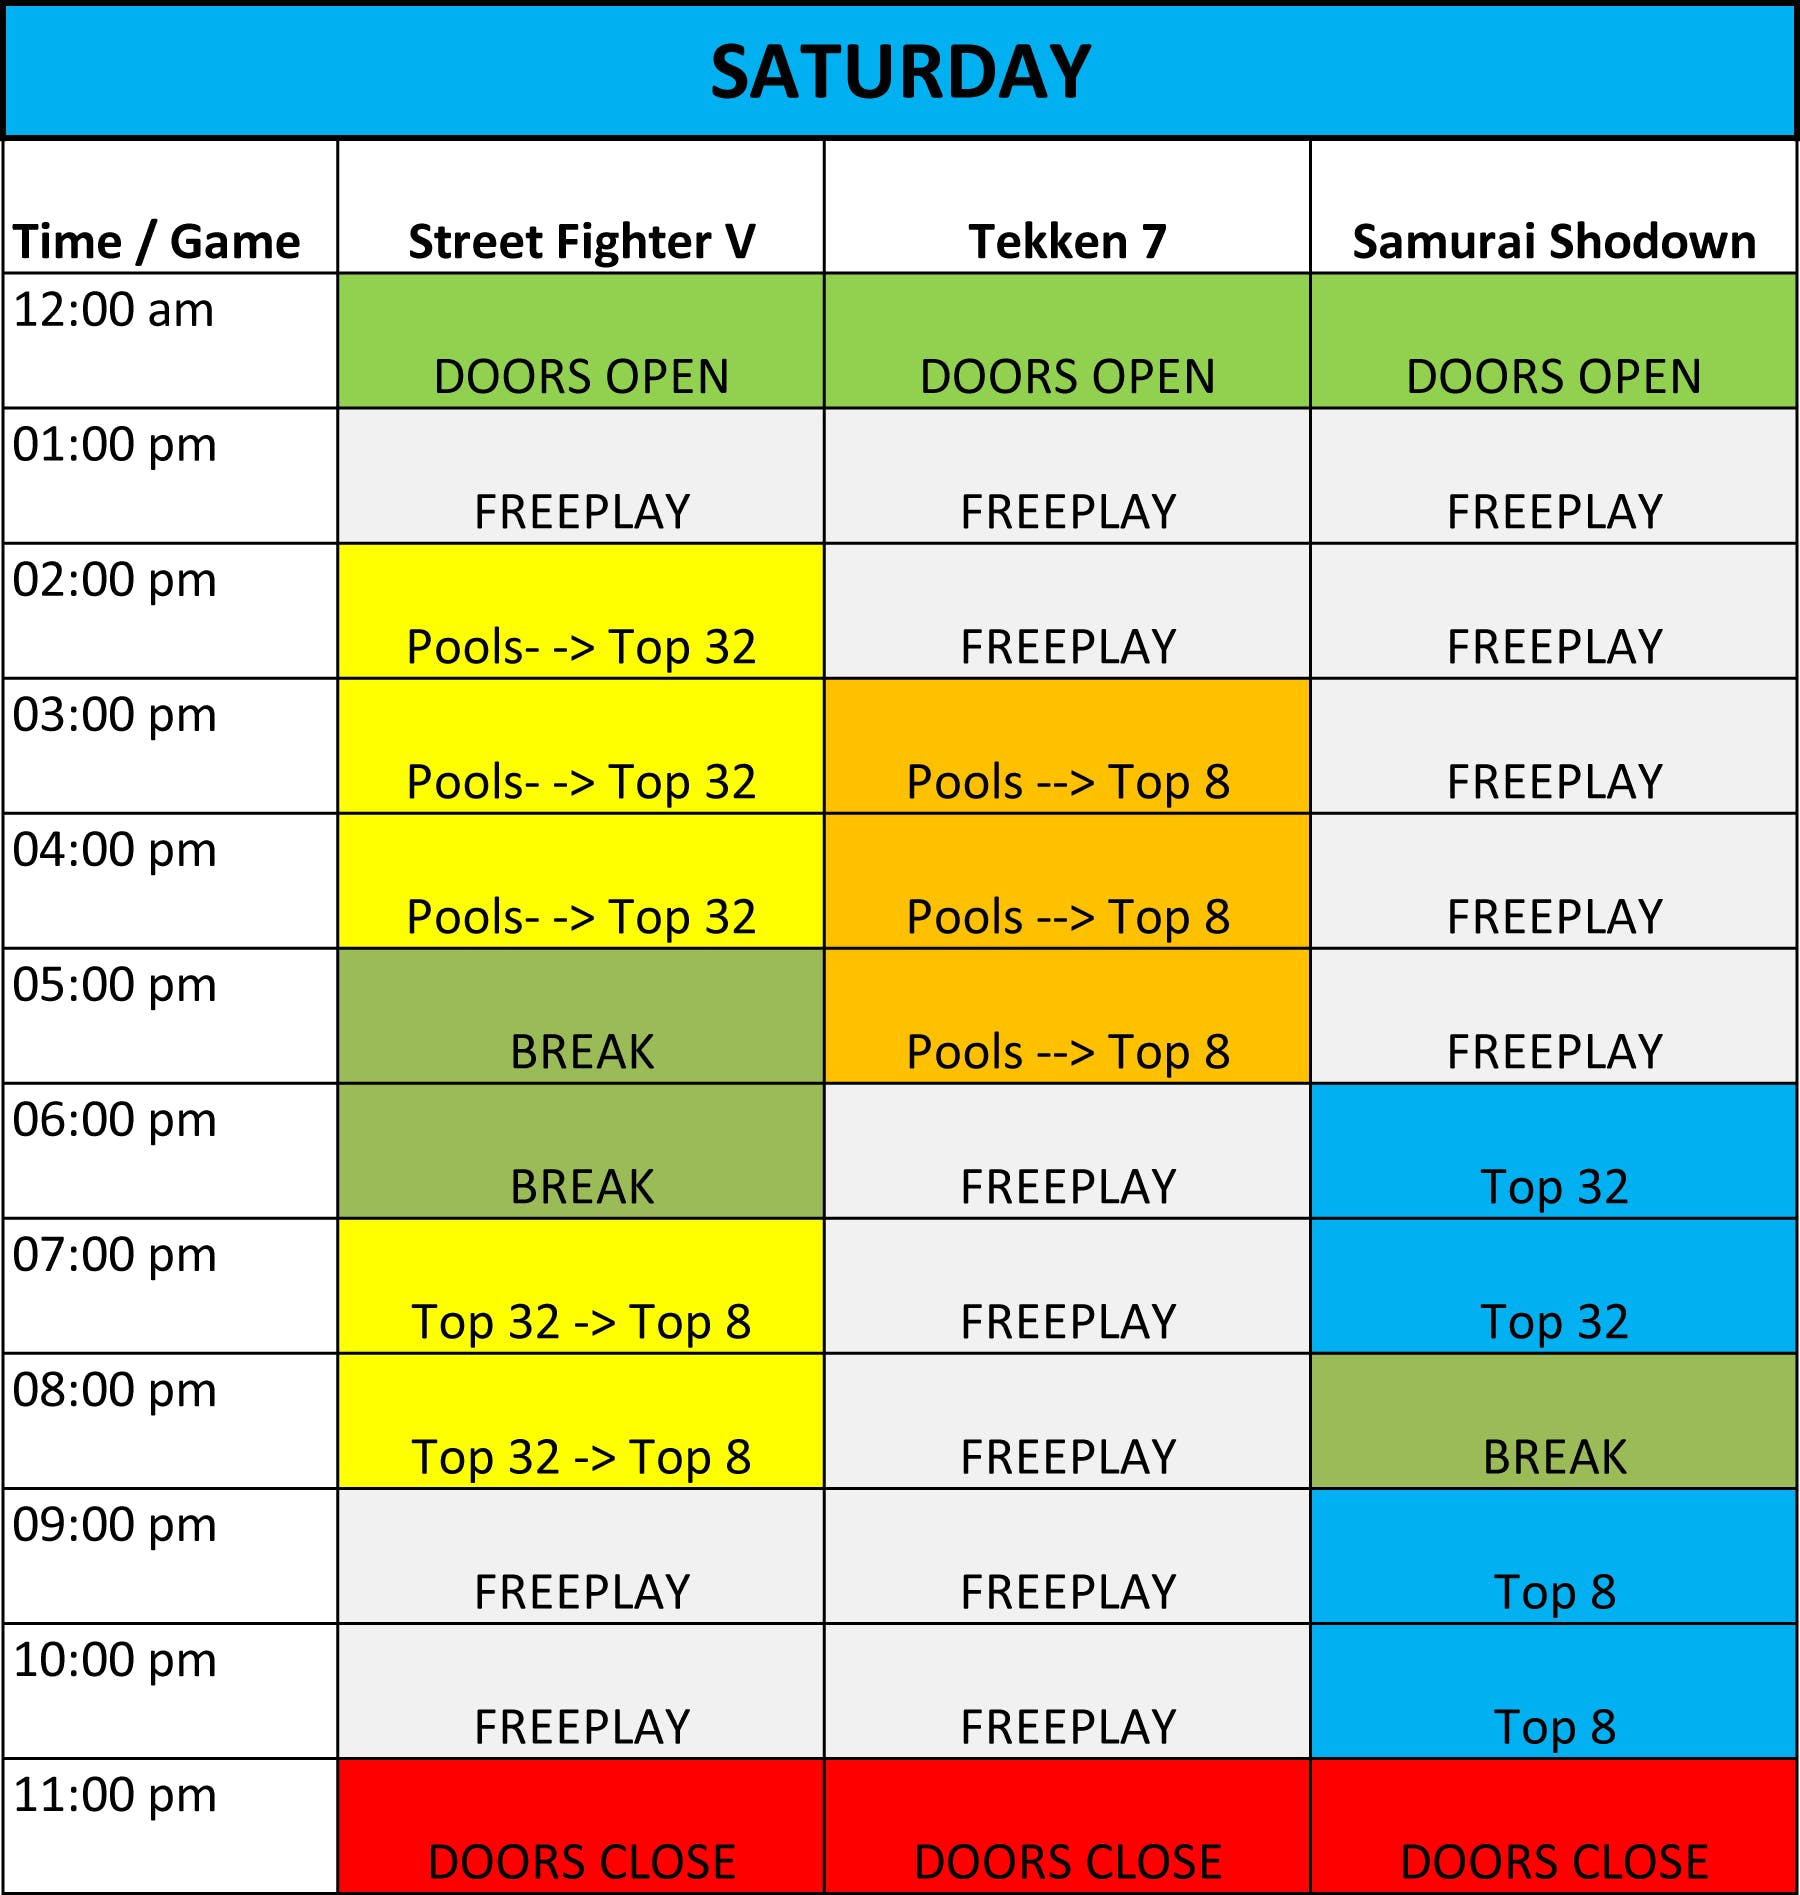 NRW Fight Club Event Schedule 1 out of 2 image gallery